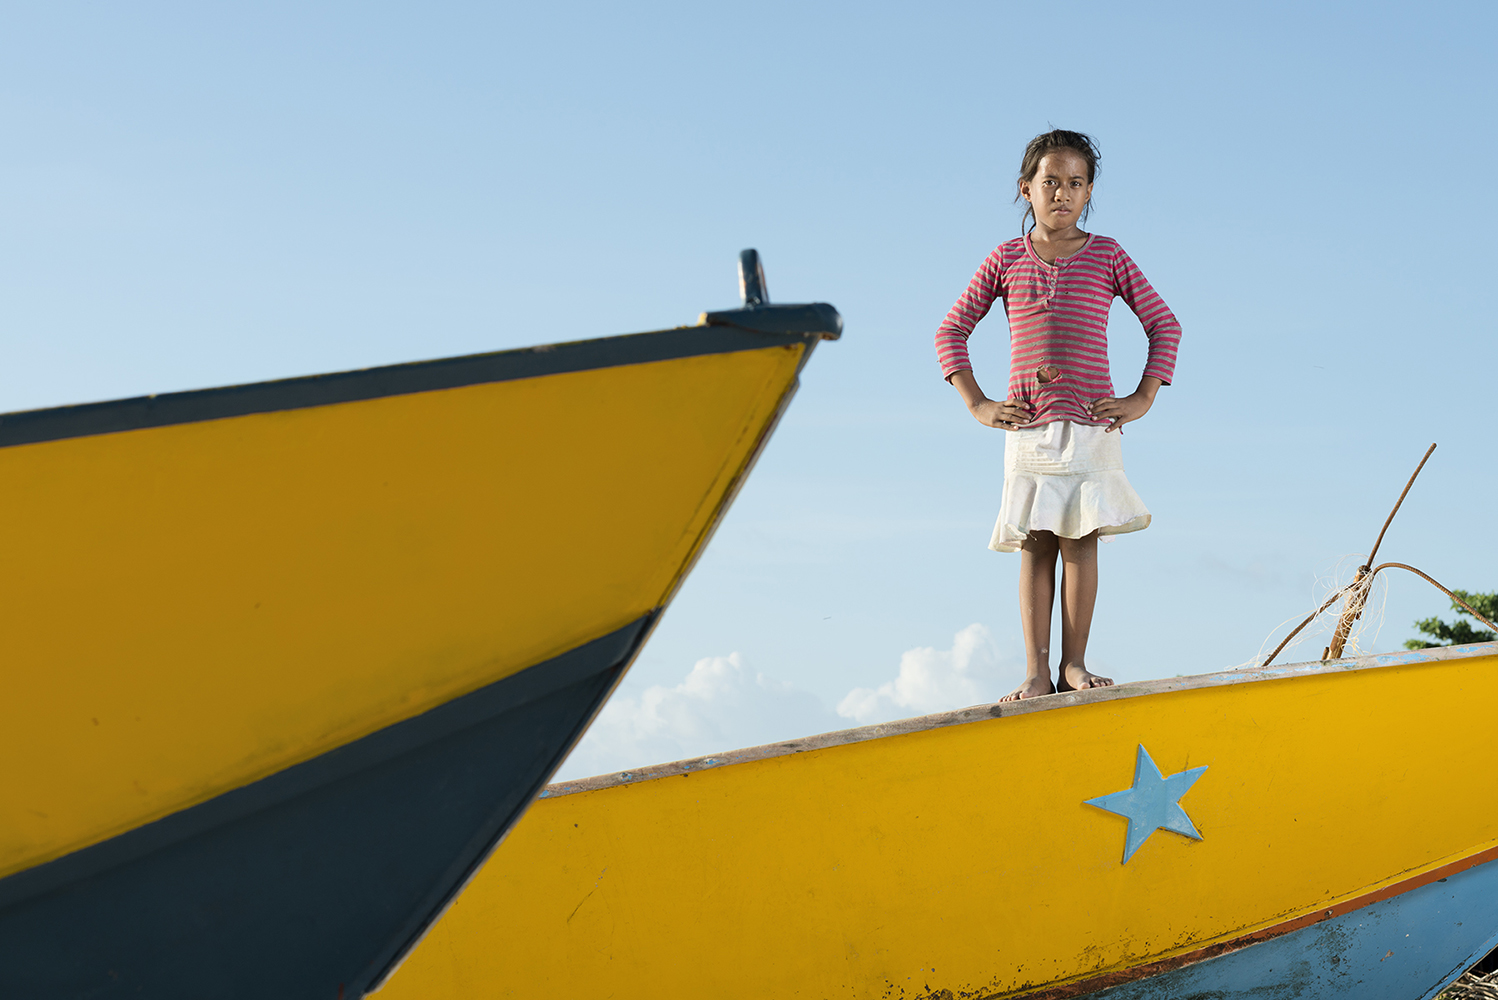 Betio, Tarawa Island, Kiribati, Pacific Ocean Young girl playing on a fishing boat in the village Te O Ni Beeki in Betio, on Tarawa Island, Kiribati